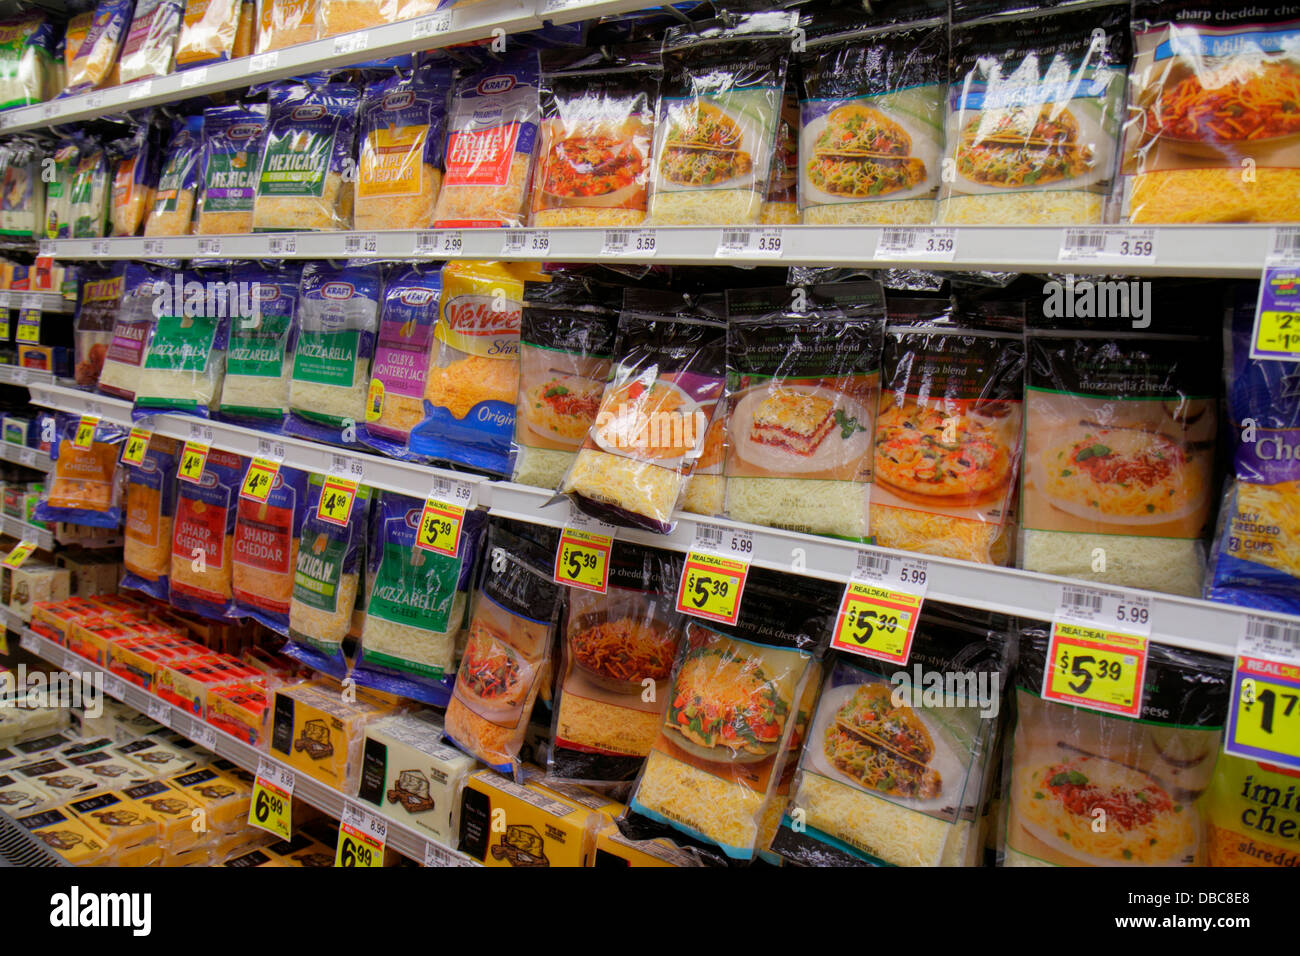 Fort Lauderdale Ft. Florida Winn Dixie grocery store supermarket food competing brands sale retail display shelves Stock Photo